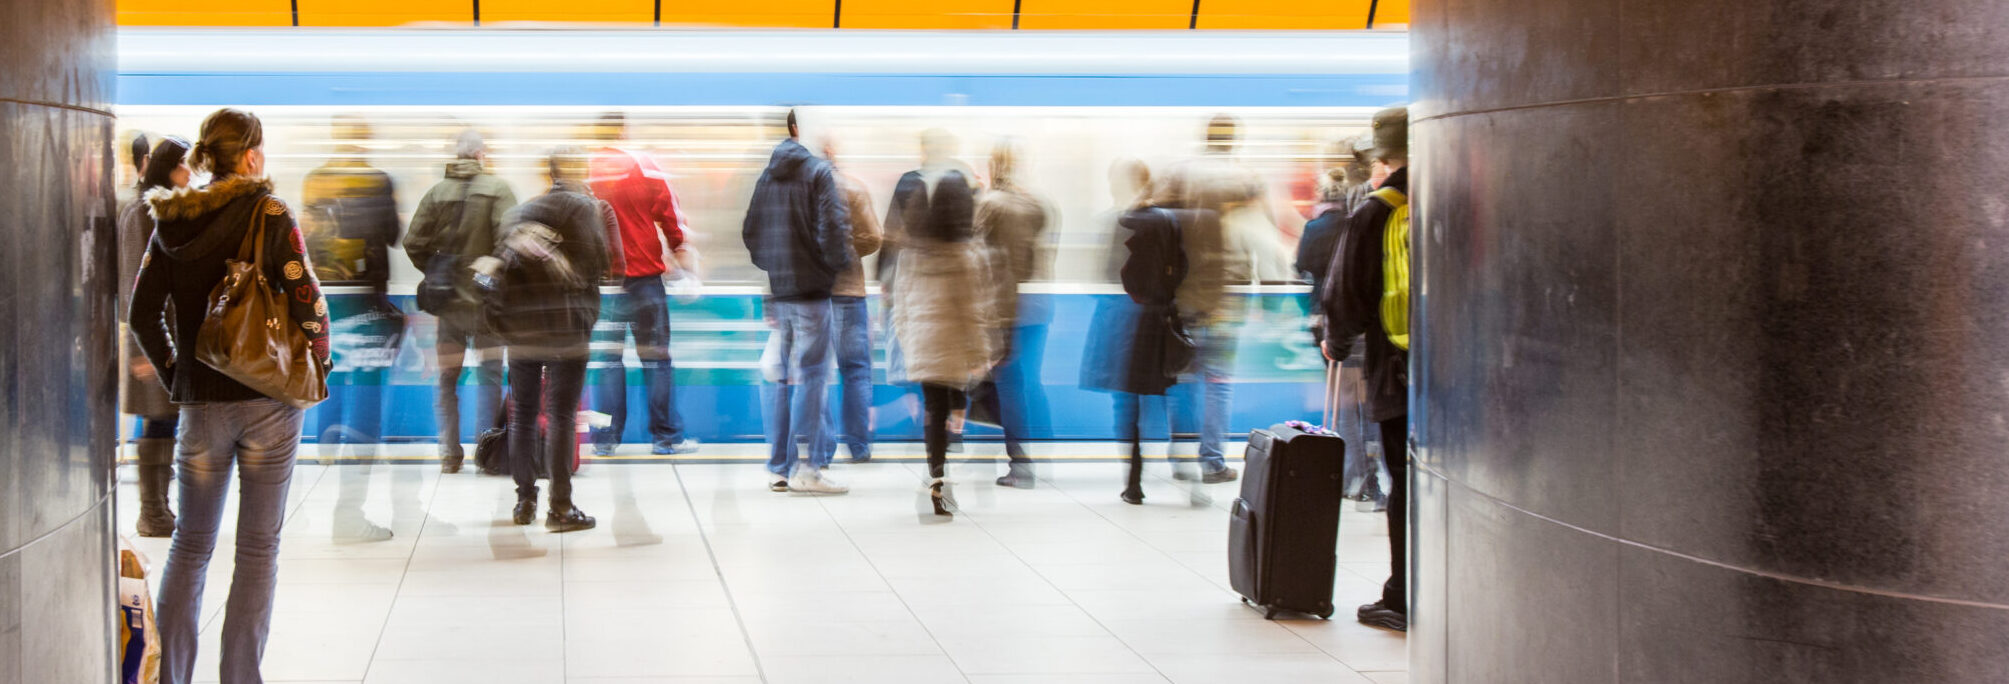 Image of blurry people on a subway platform